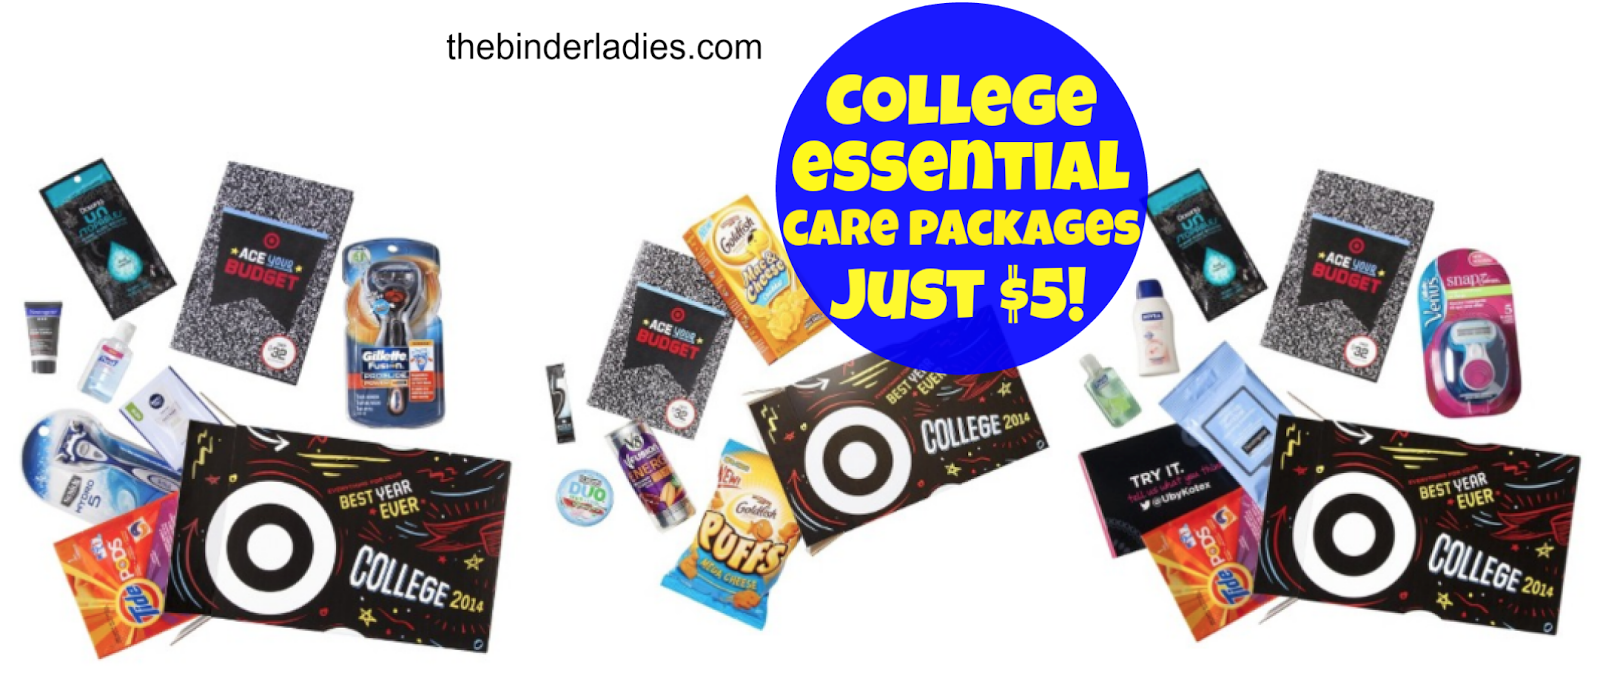 http://www.thebinderladies.com/2014/10/targetcom-college-essentials-care.html